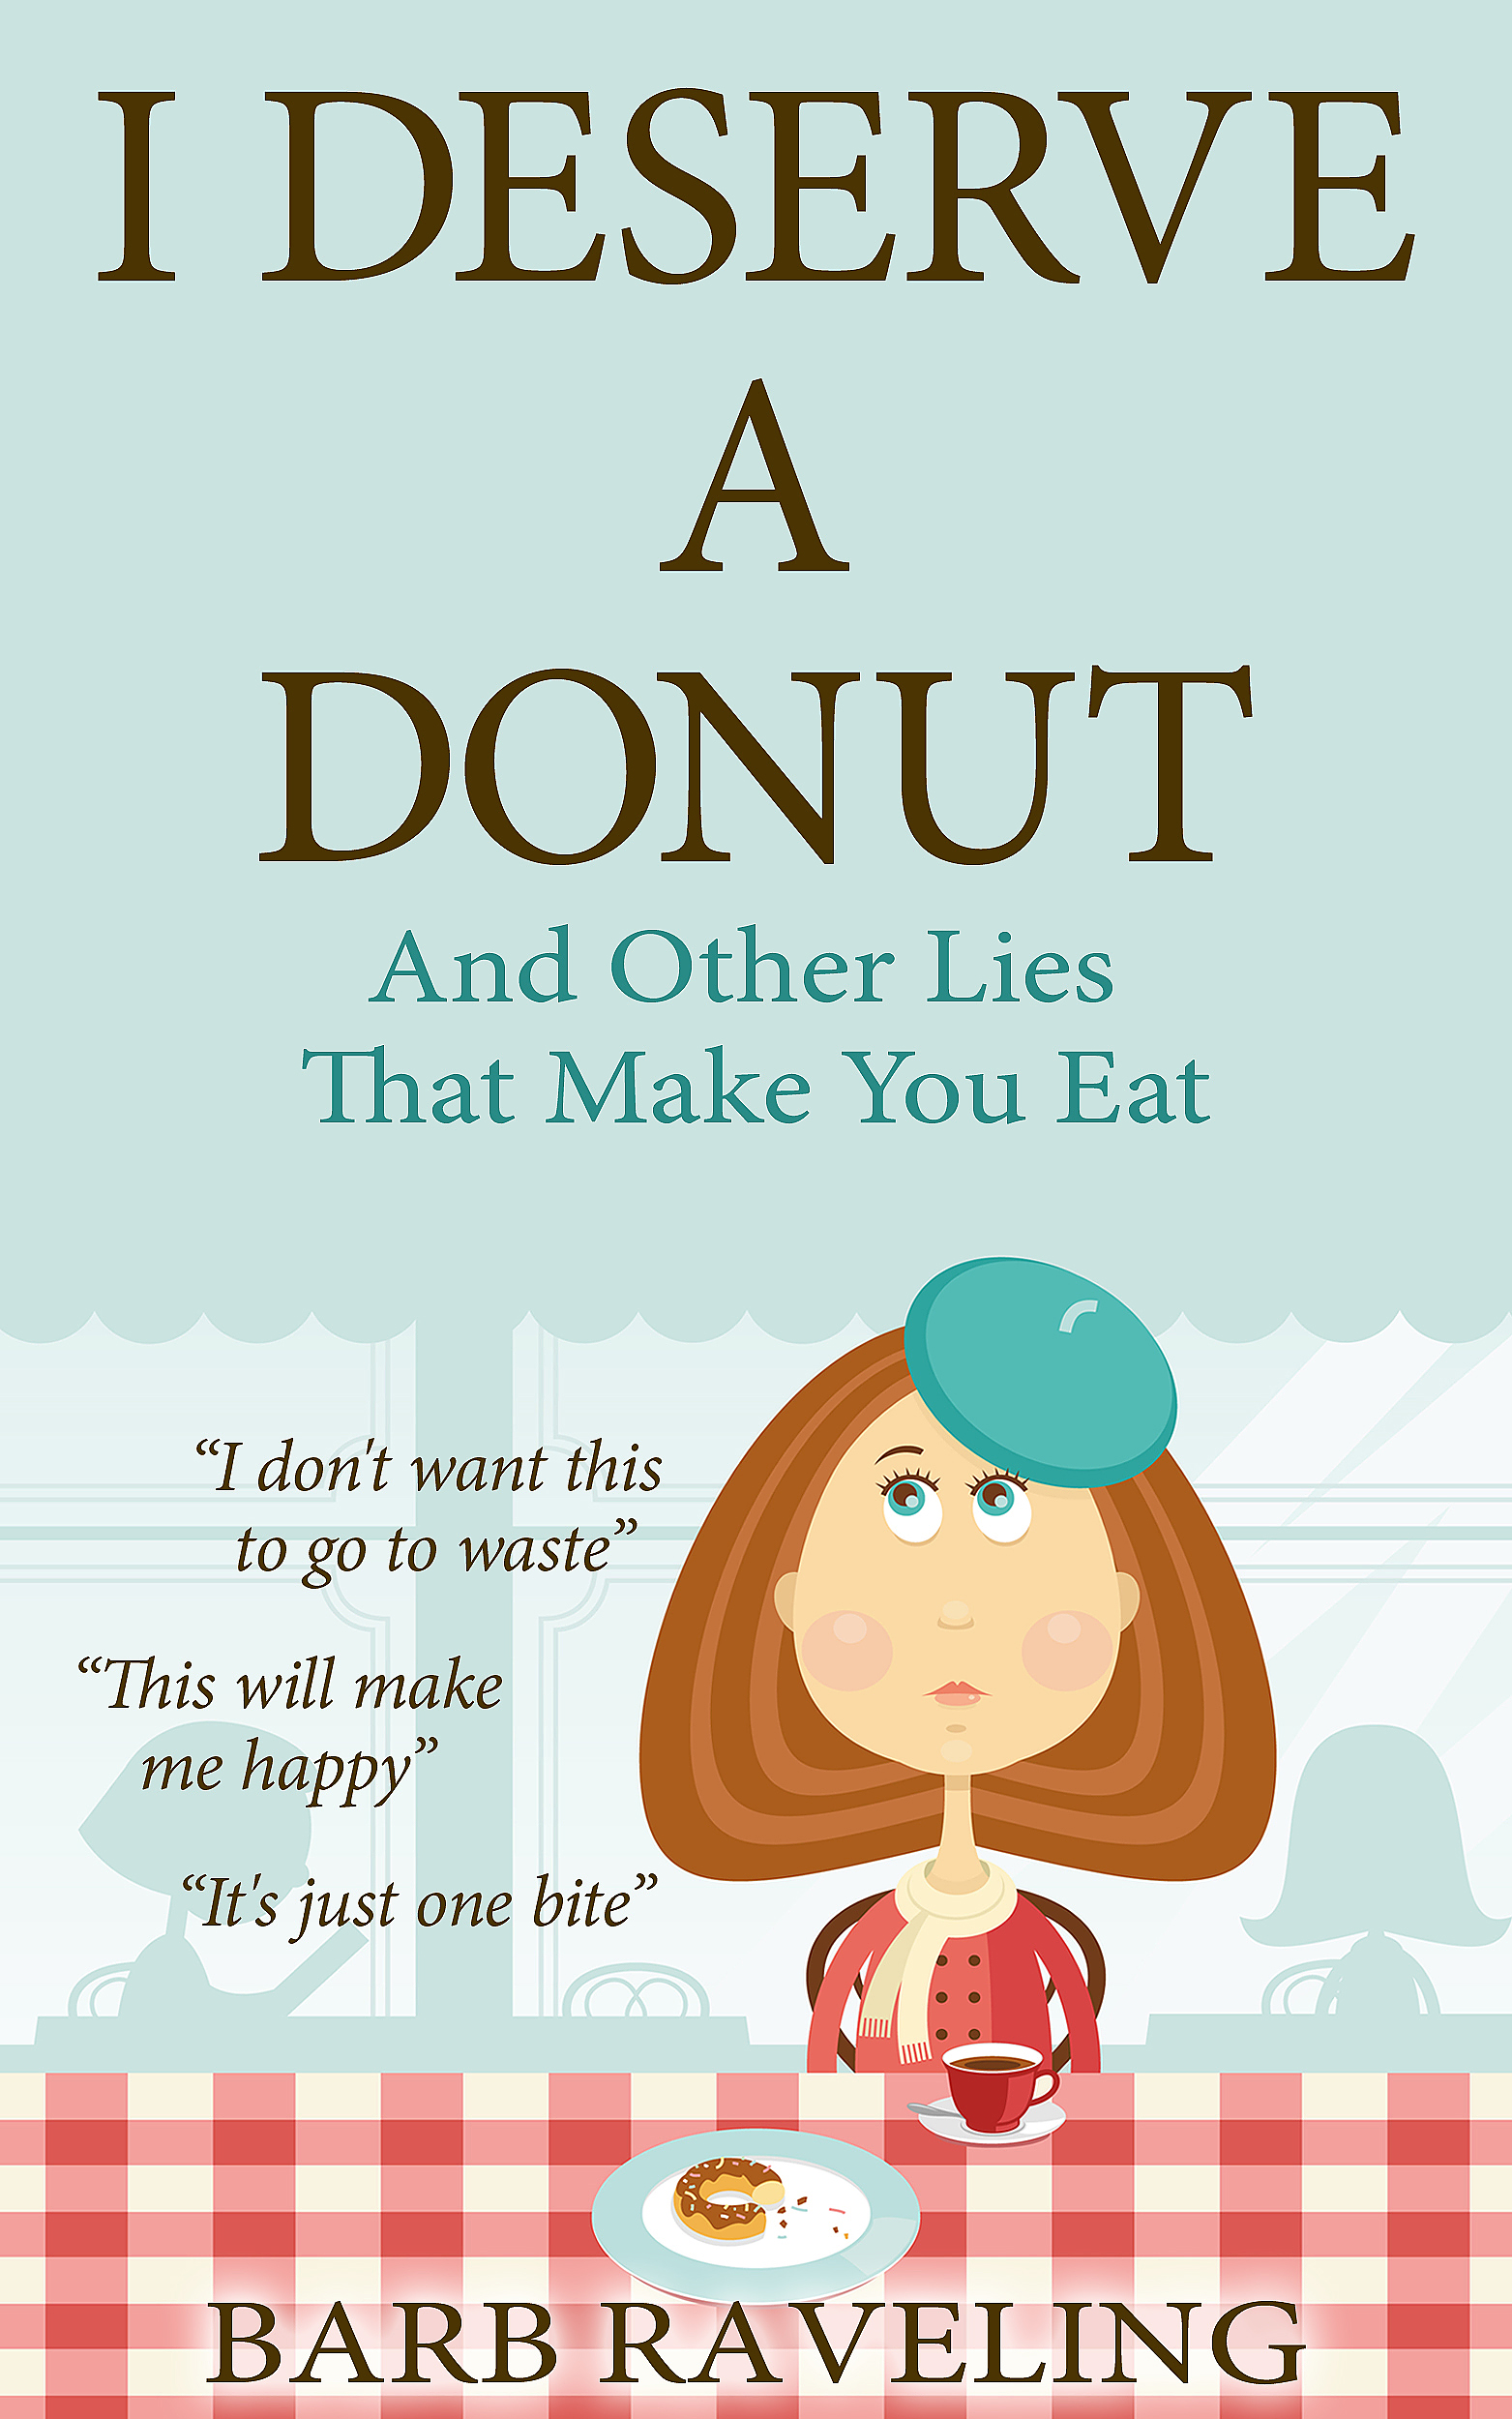 I Deserve A Donut. And Other Lies That Make You Eat  Author: Barb Raveling  Published by: Truthway Press  Genres: Diet, lifestyle, self-help  Available at: goodreads.com